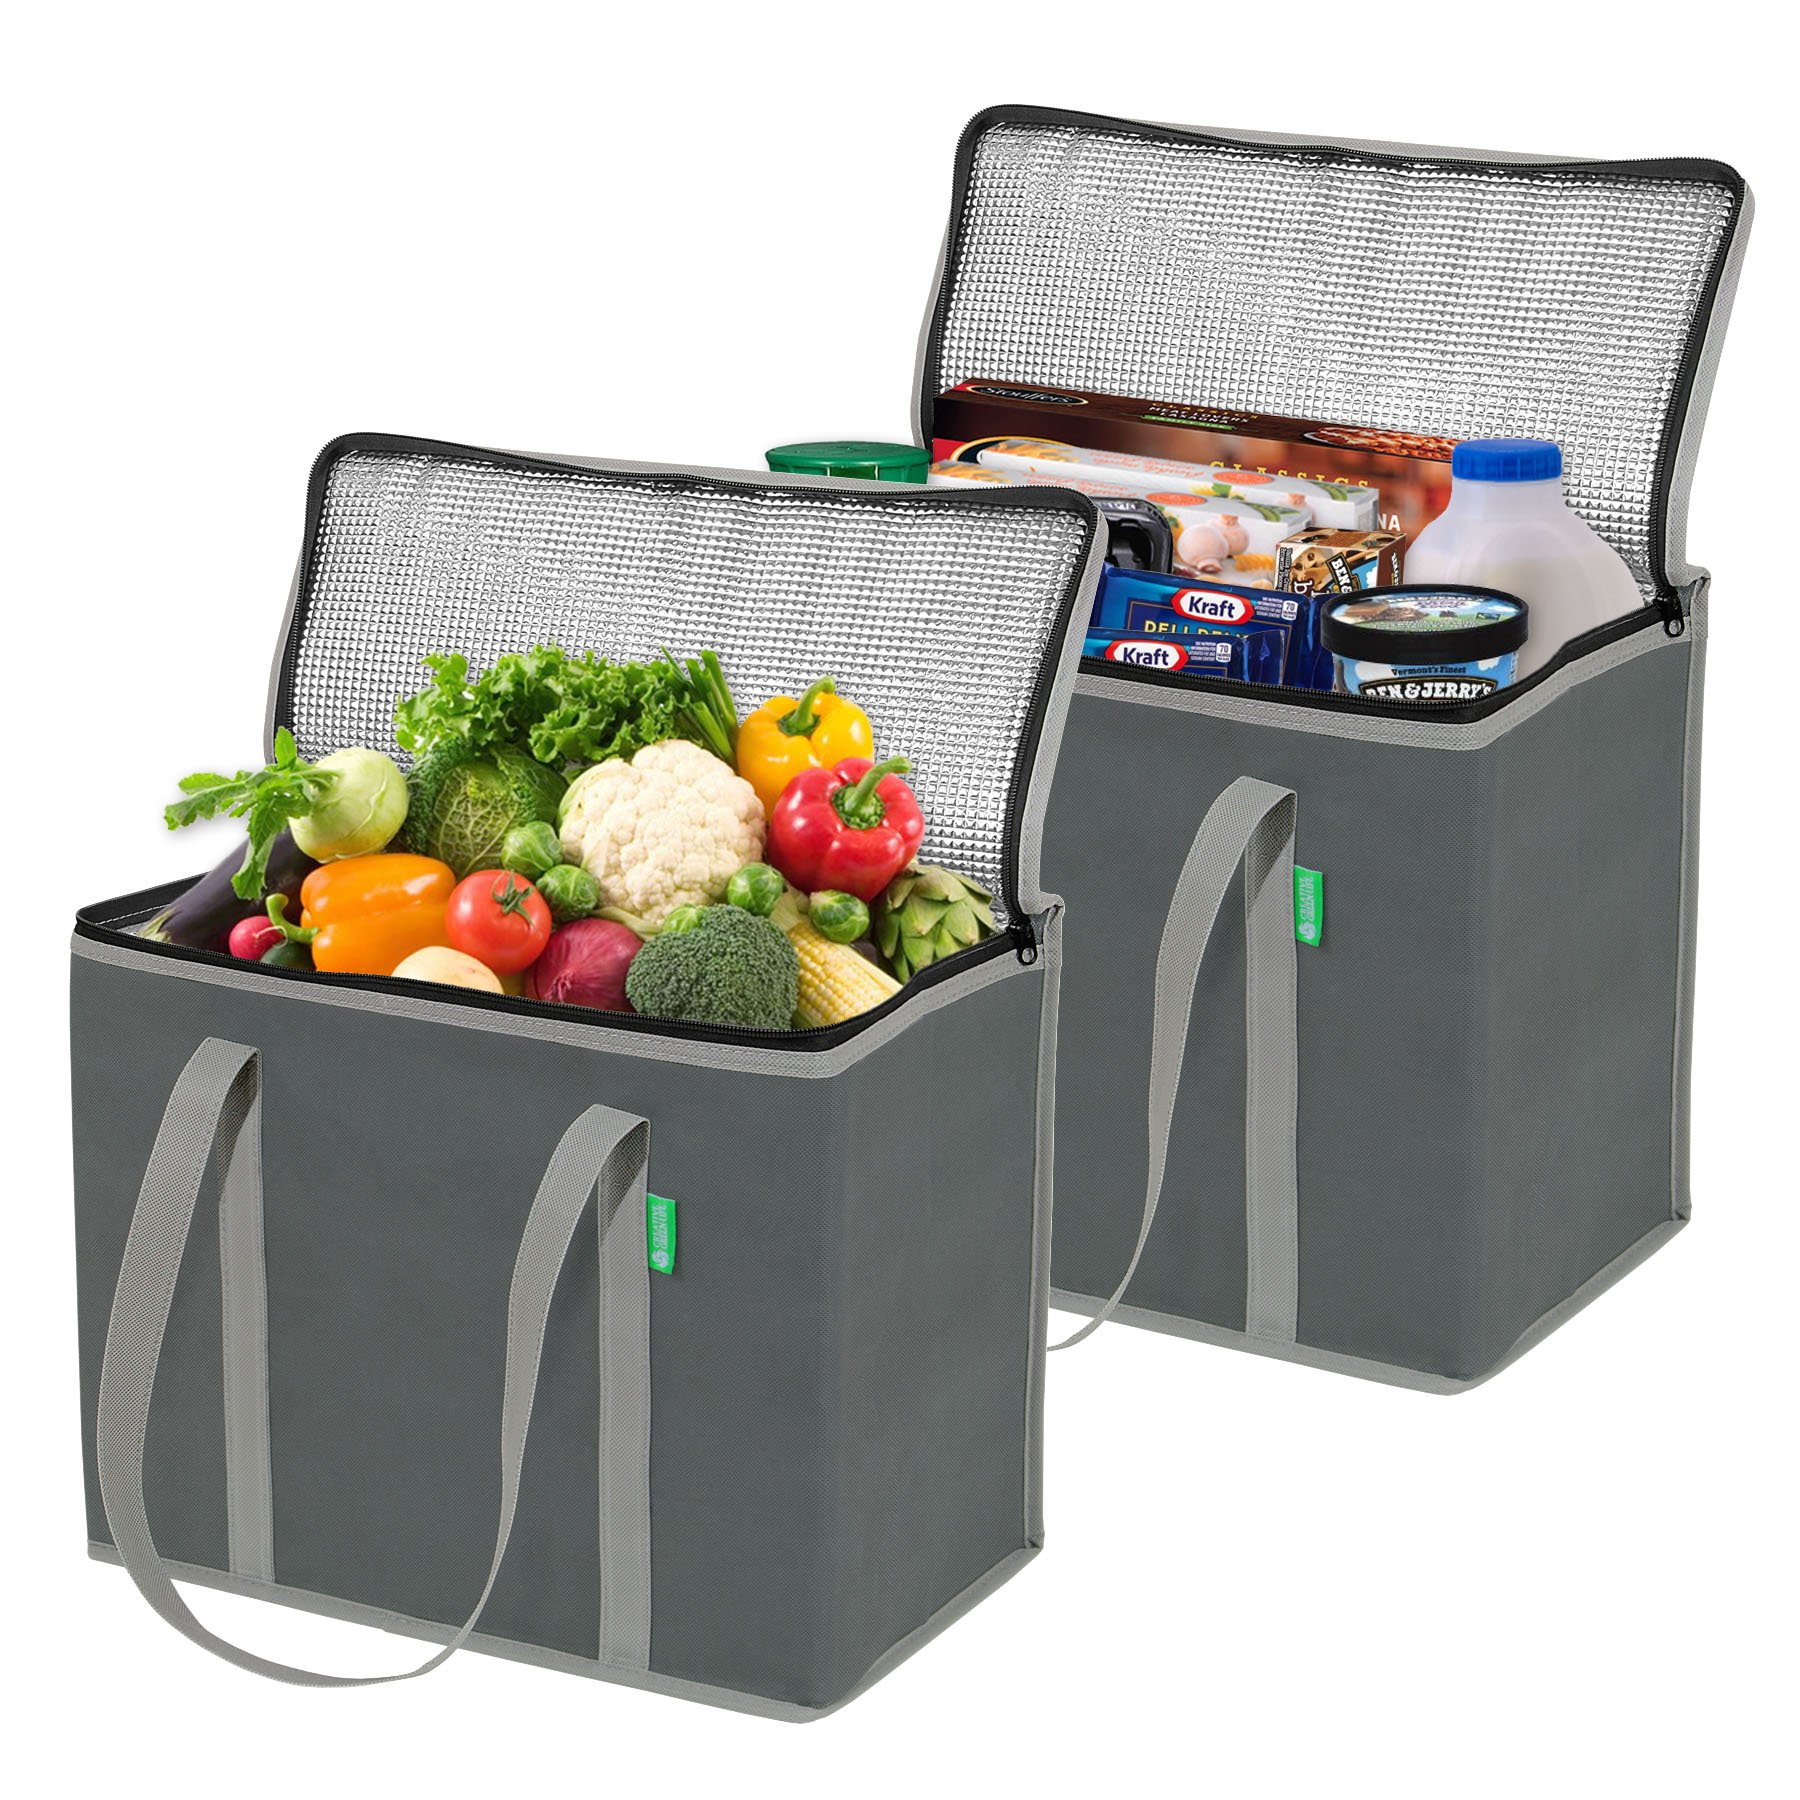 Insulated Grocery Shopping Bags (2 Pack - Gray). X-Large Size, Premium Quality, Heavy Duty Cooler Bag Set with Long Handles and Zipper Top. Reusable Tote for Warm or Cold Food, Freezer Items, Delivery